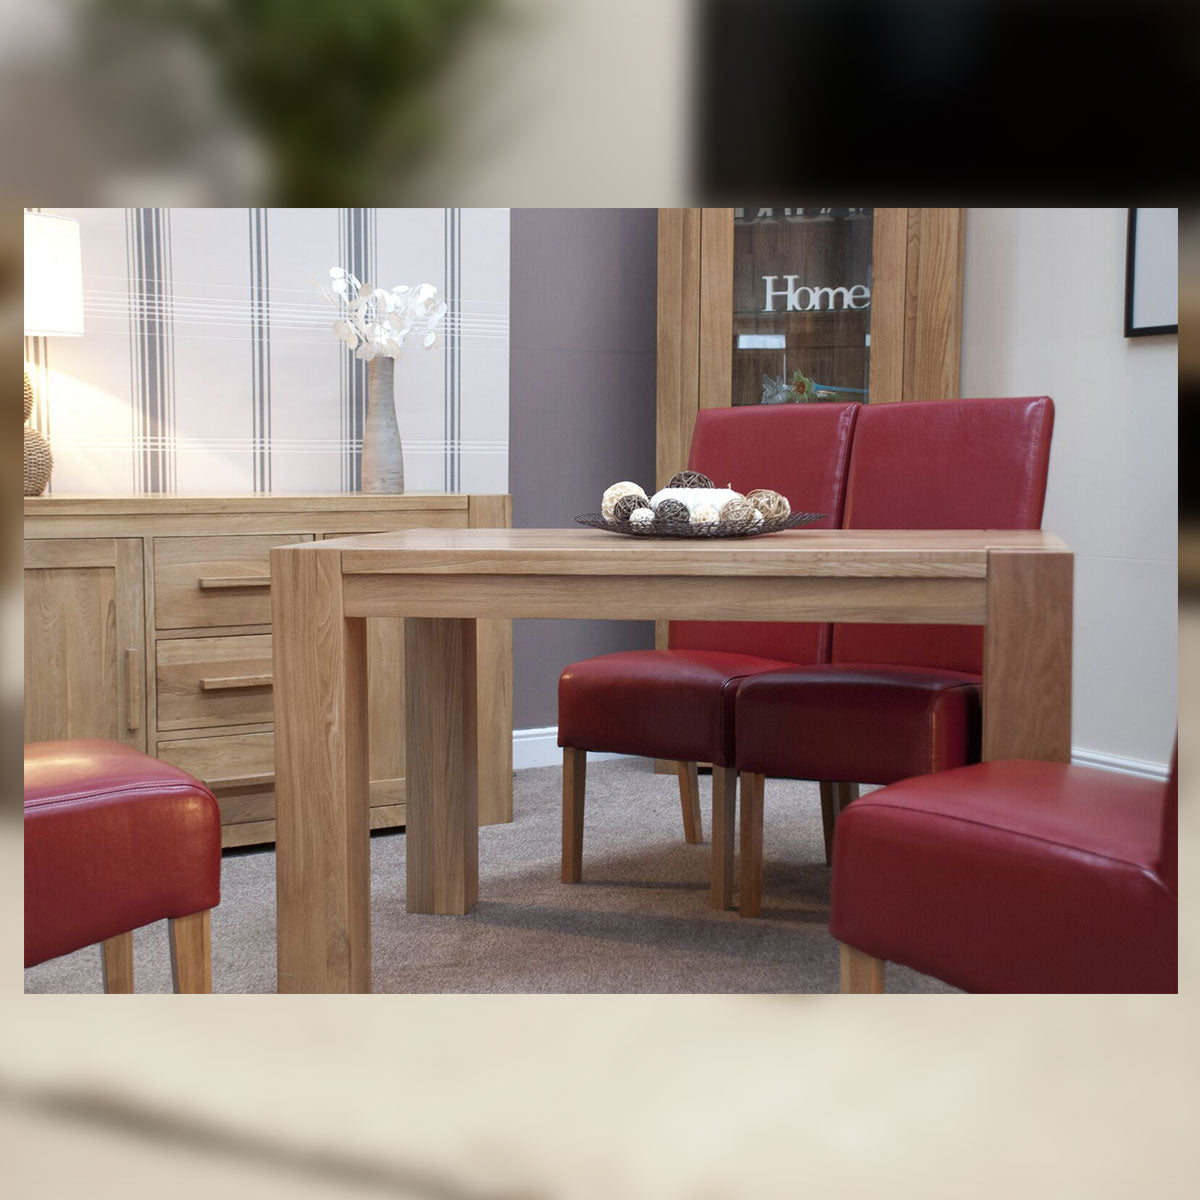 Barcelona Oak Small Chunky Dining Table 122 cm (4 ft) X 76 cm (30 Inch)